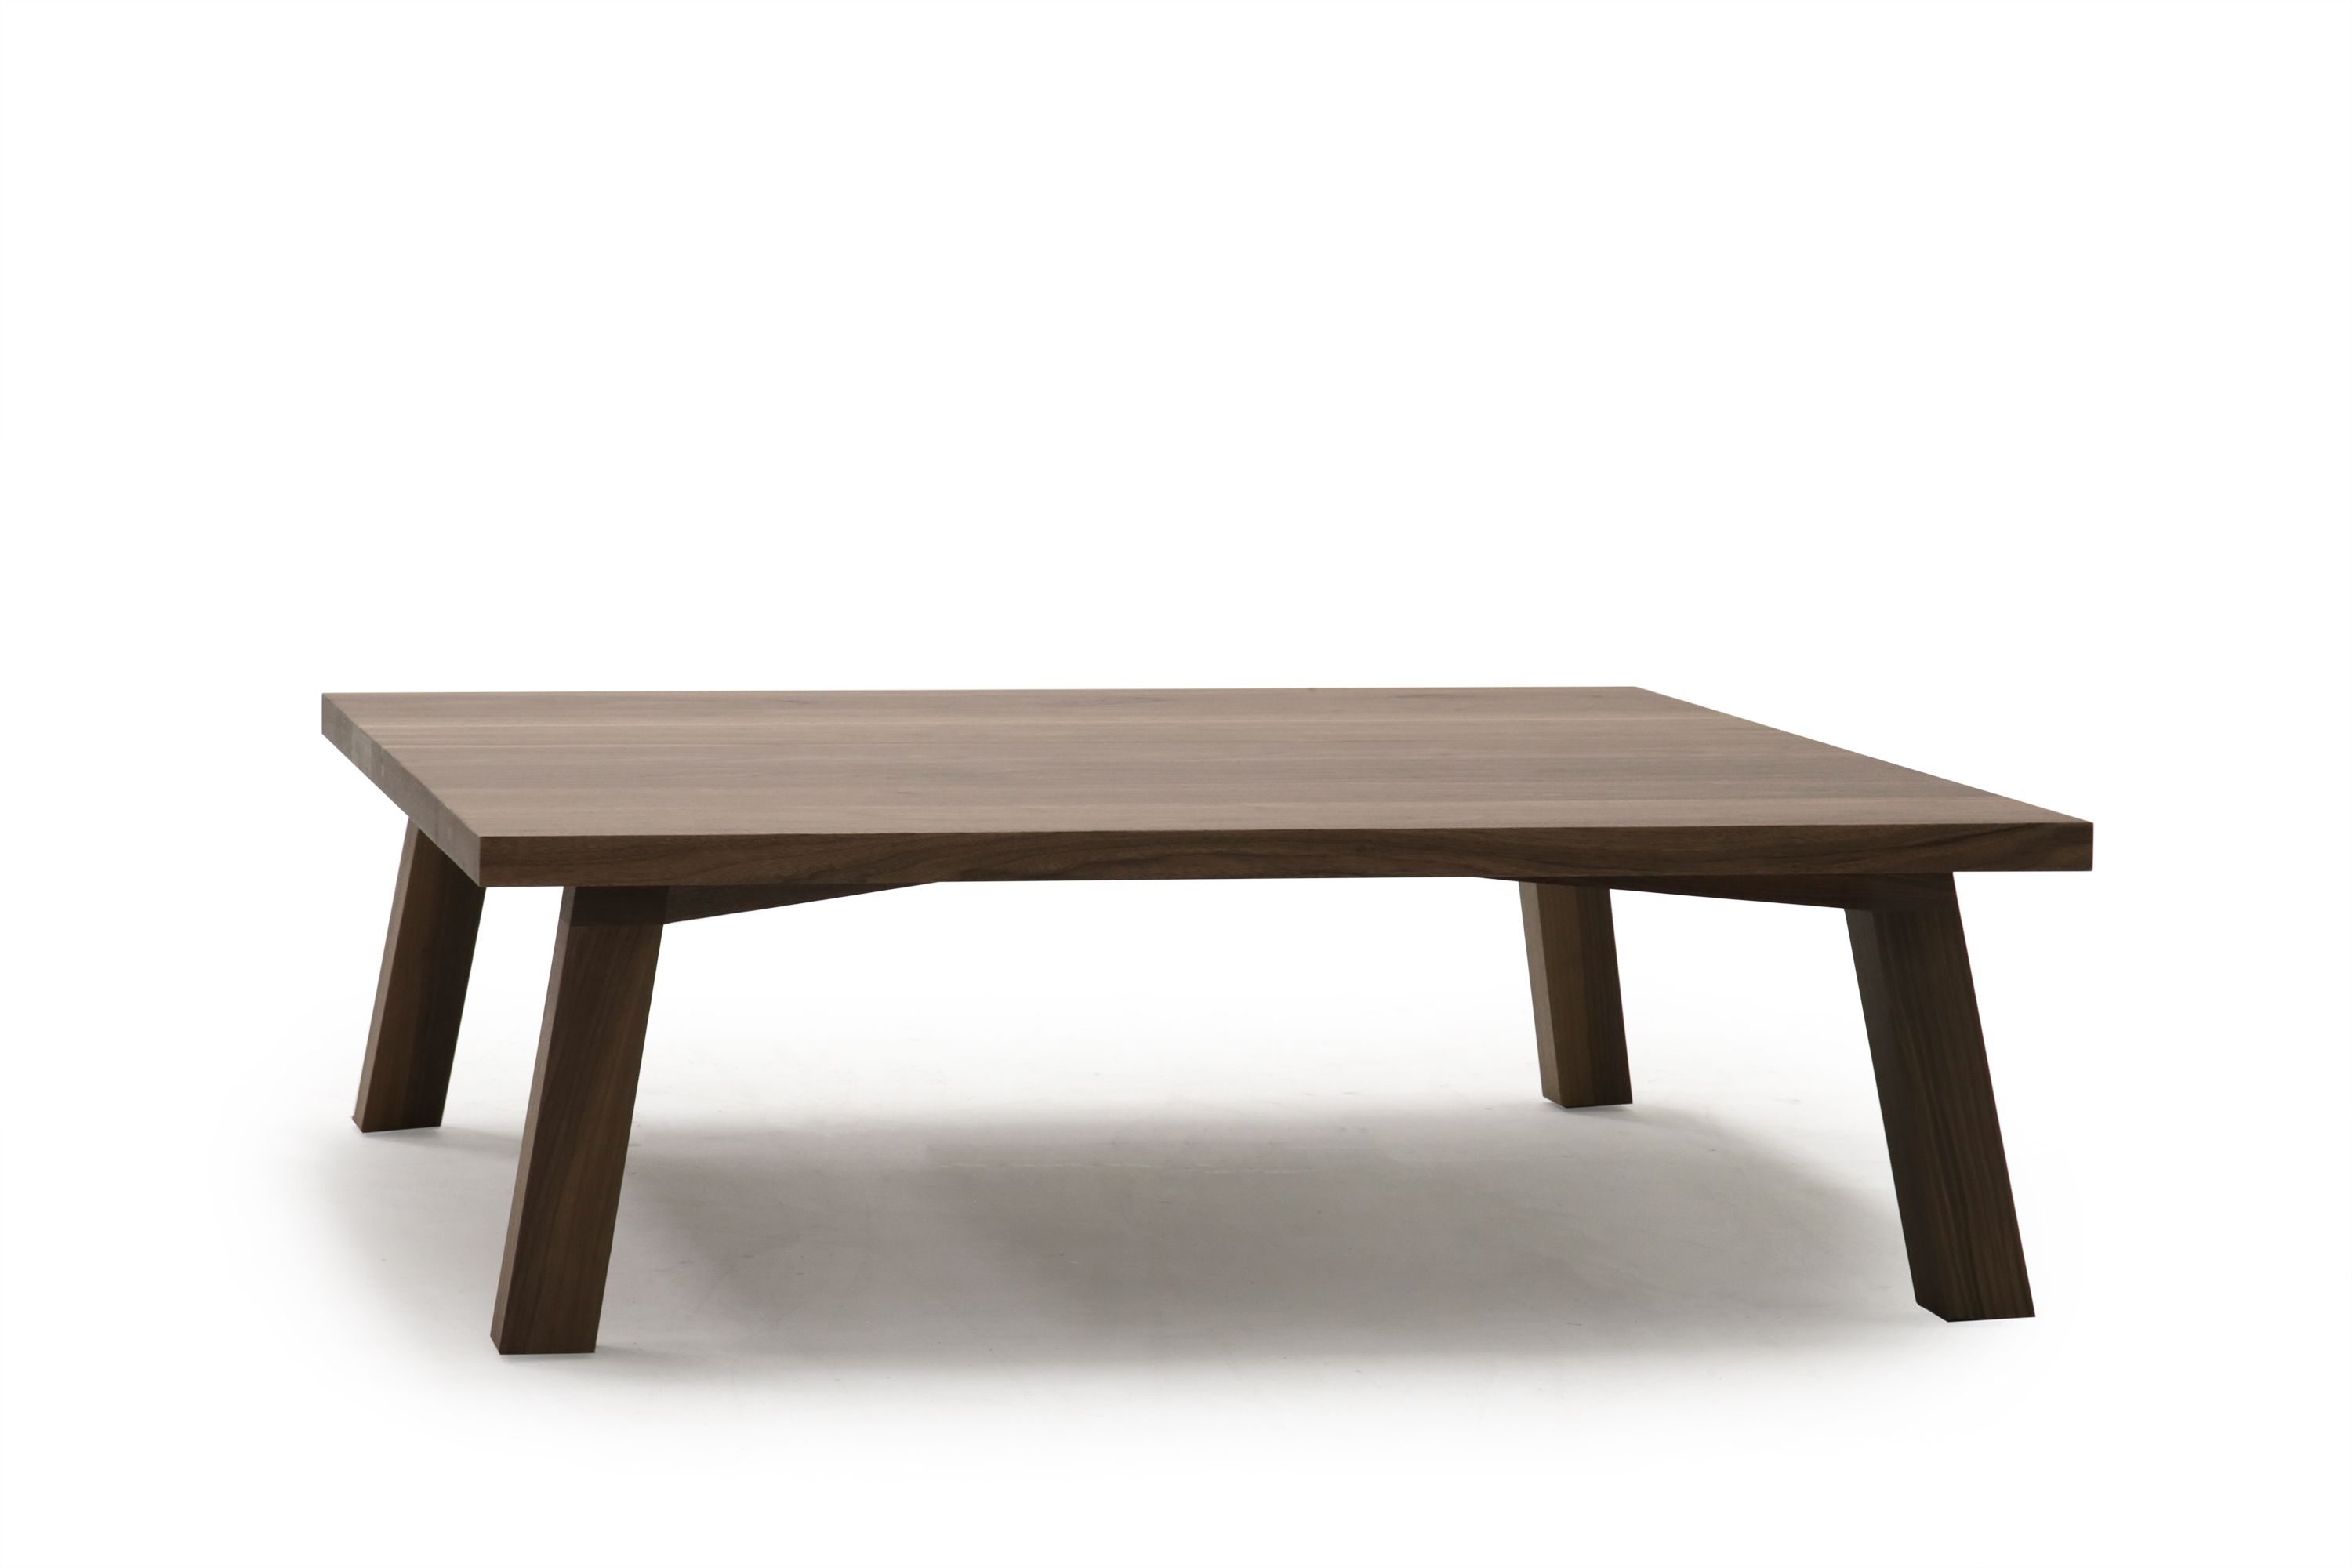 Verellen Lille Coffee Table In Walnut Dining Table Table Home